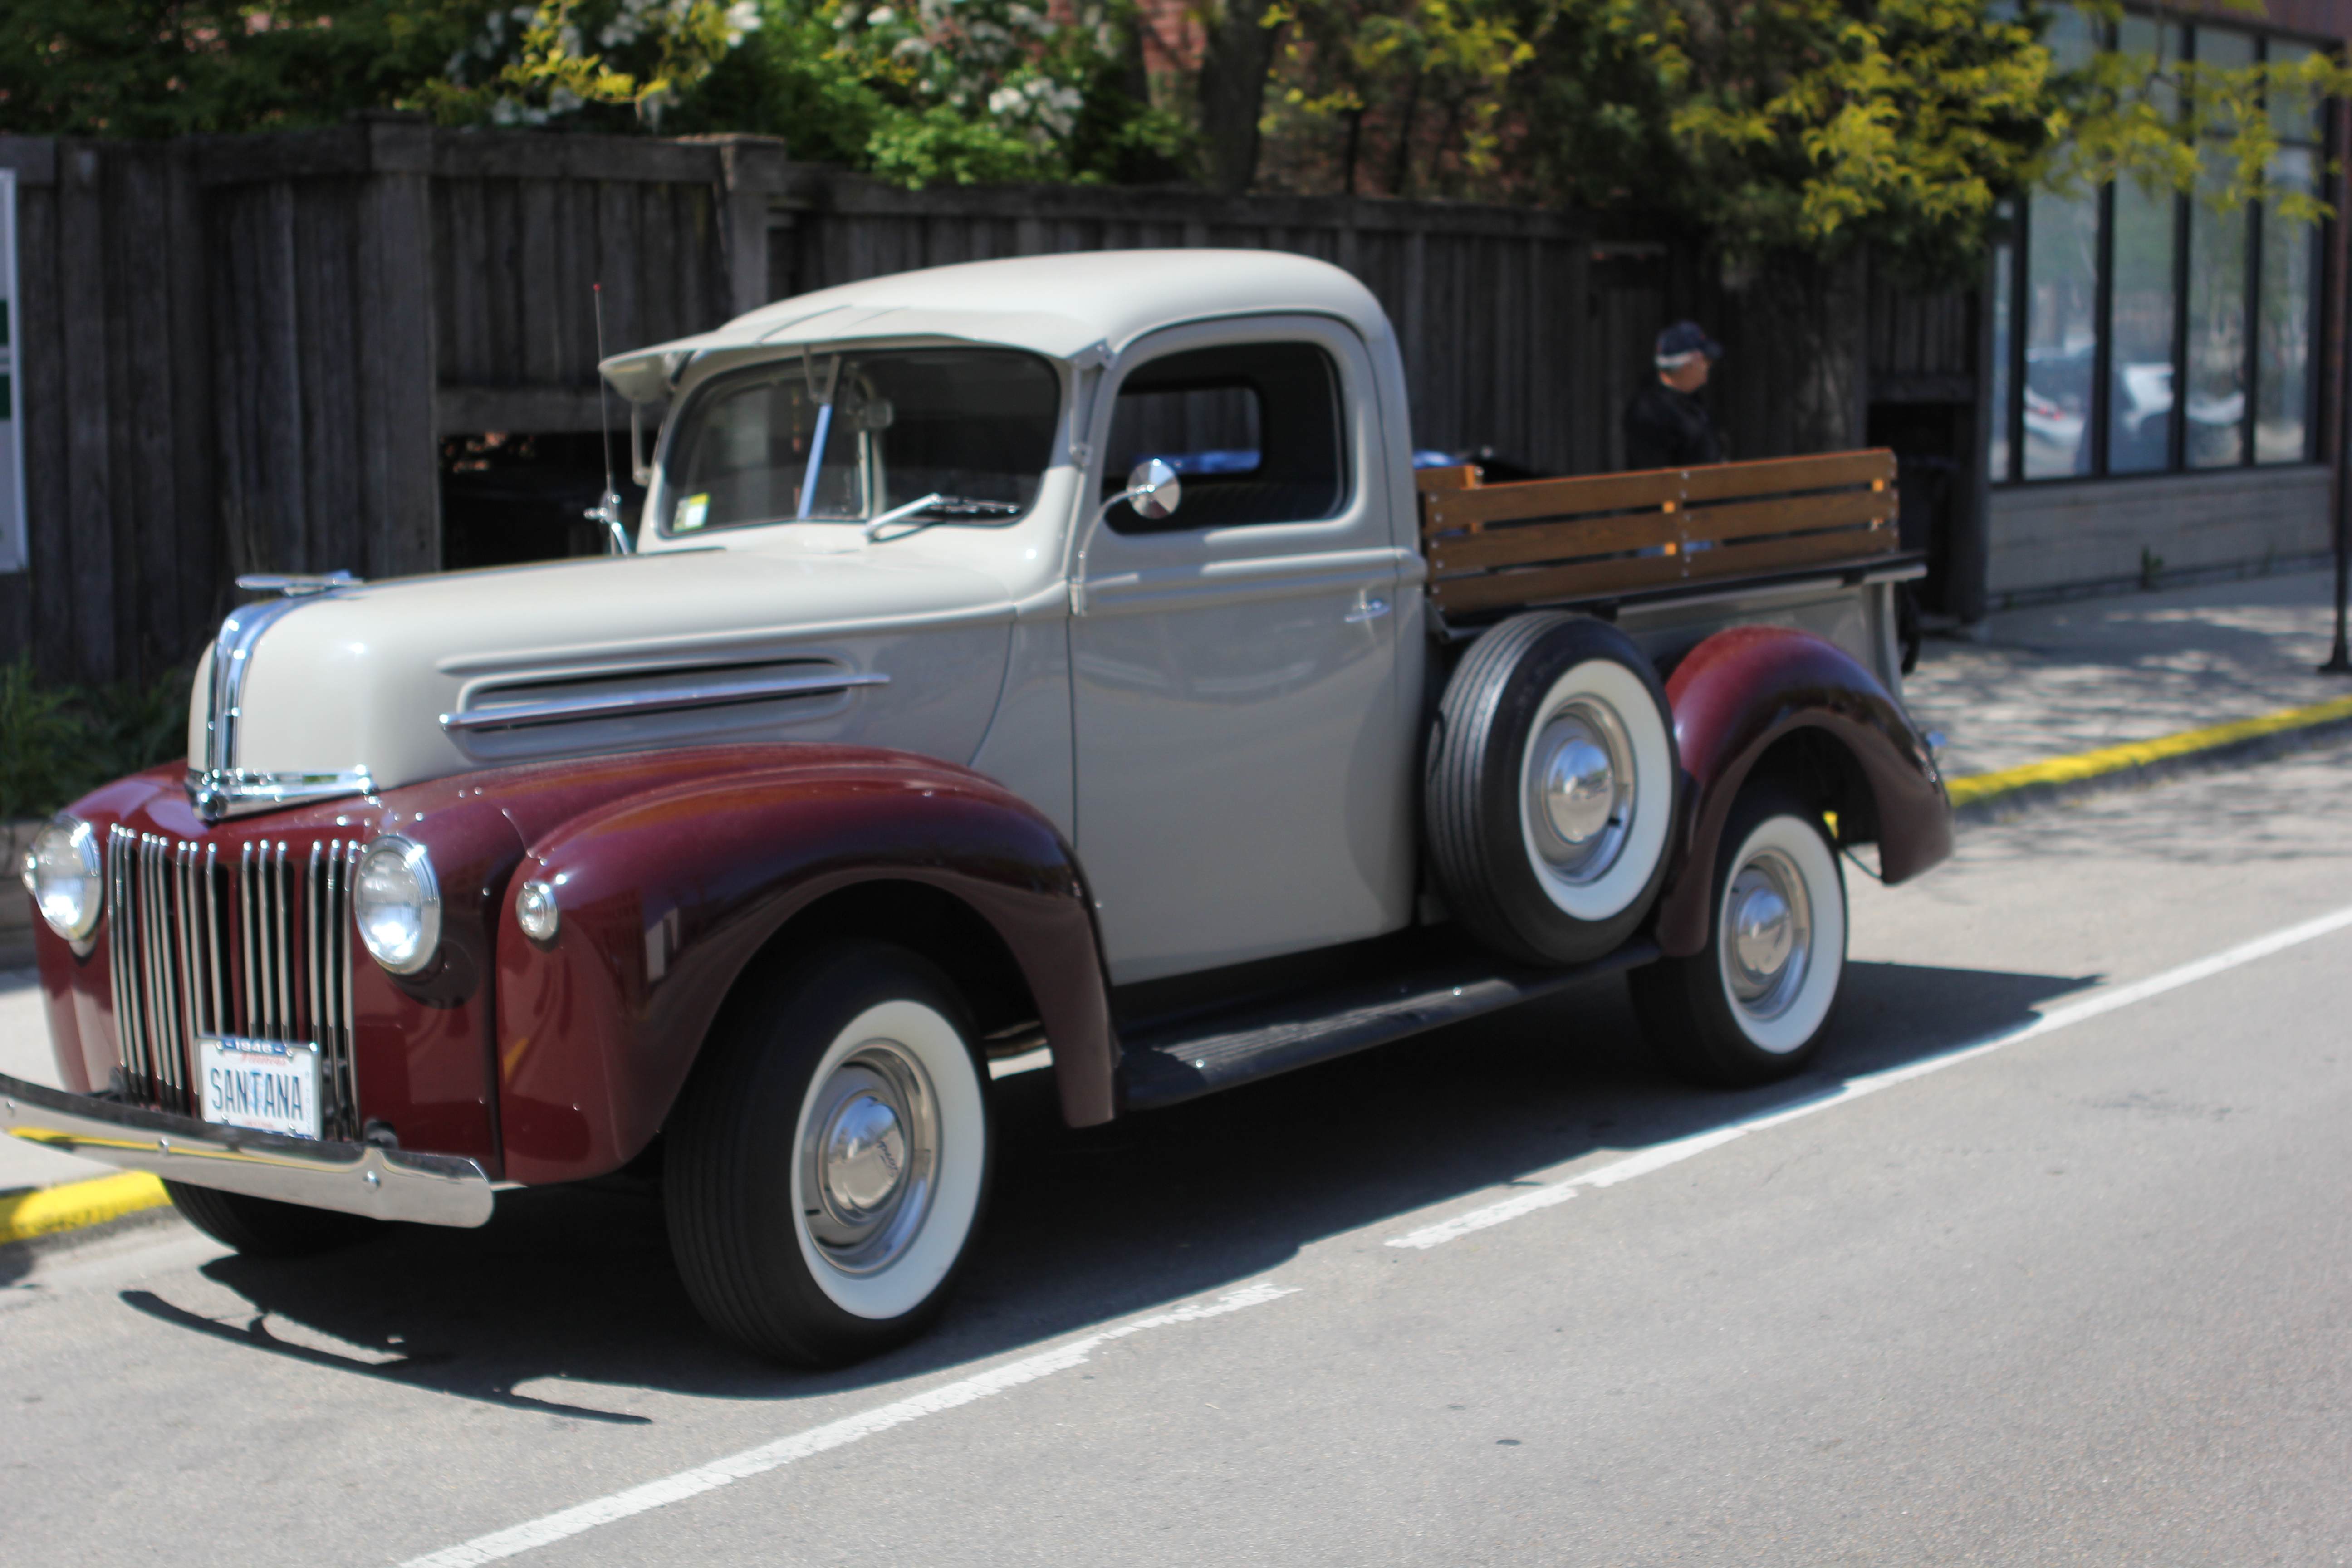 1946 Ford Pick Up Wallpapers Vehicles Hq 1946 Ford Pick Up Pictures 4k Wallpapers 2019